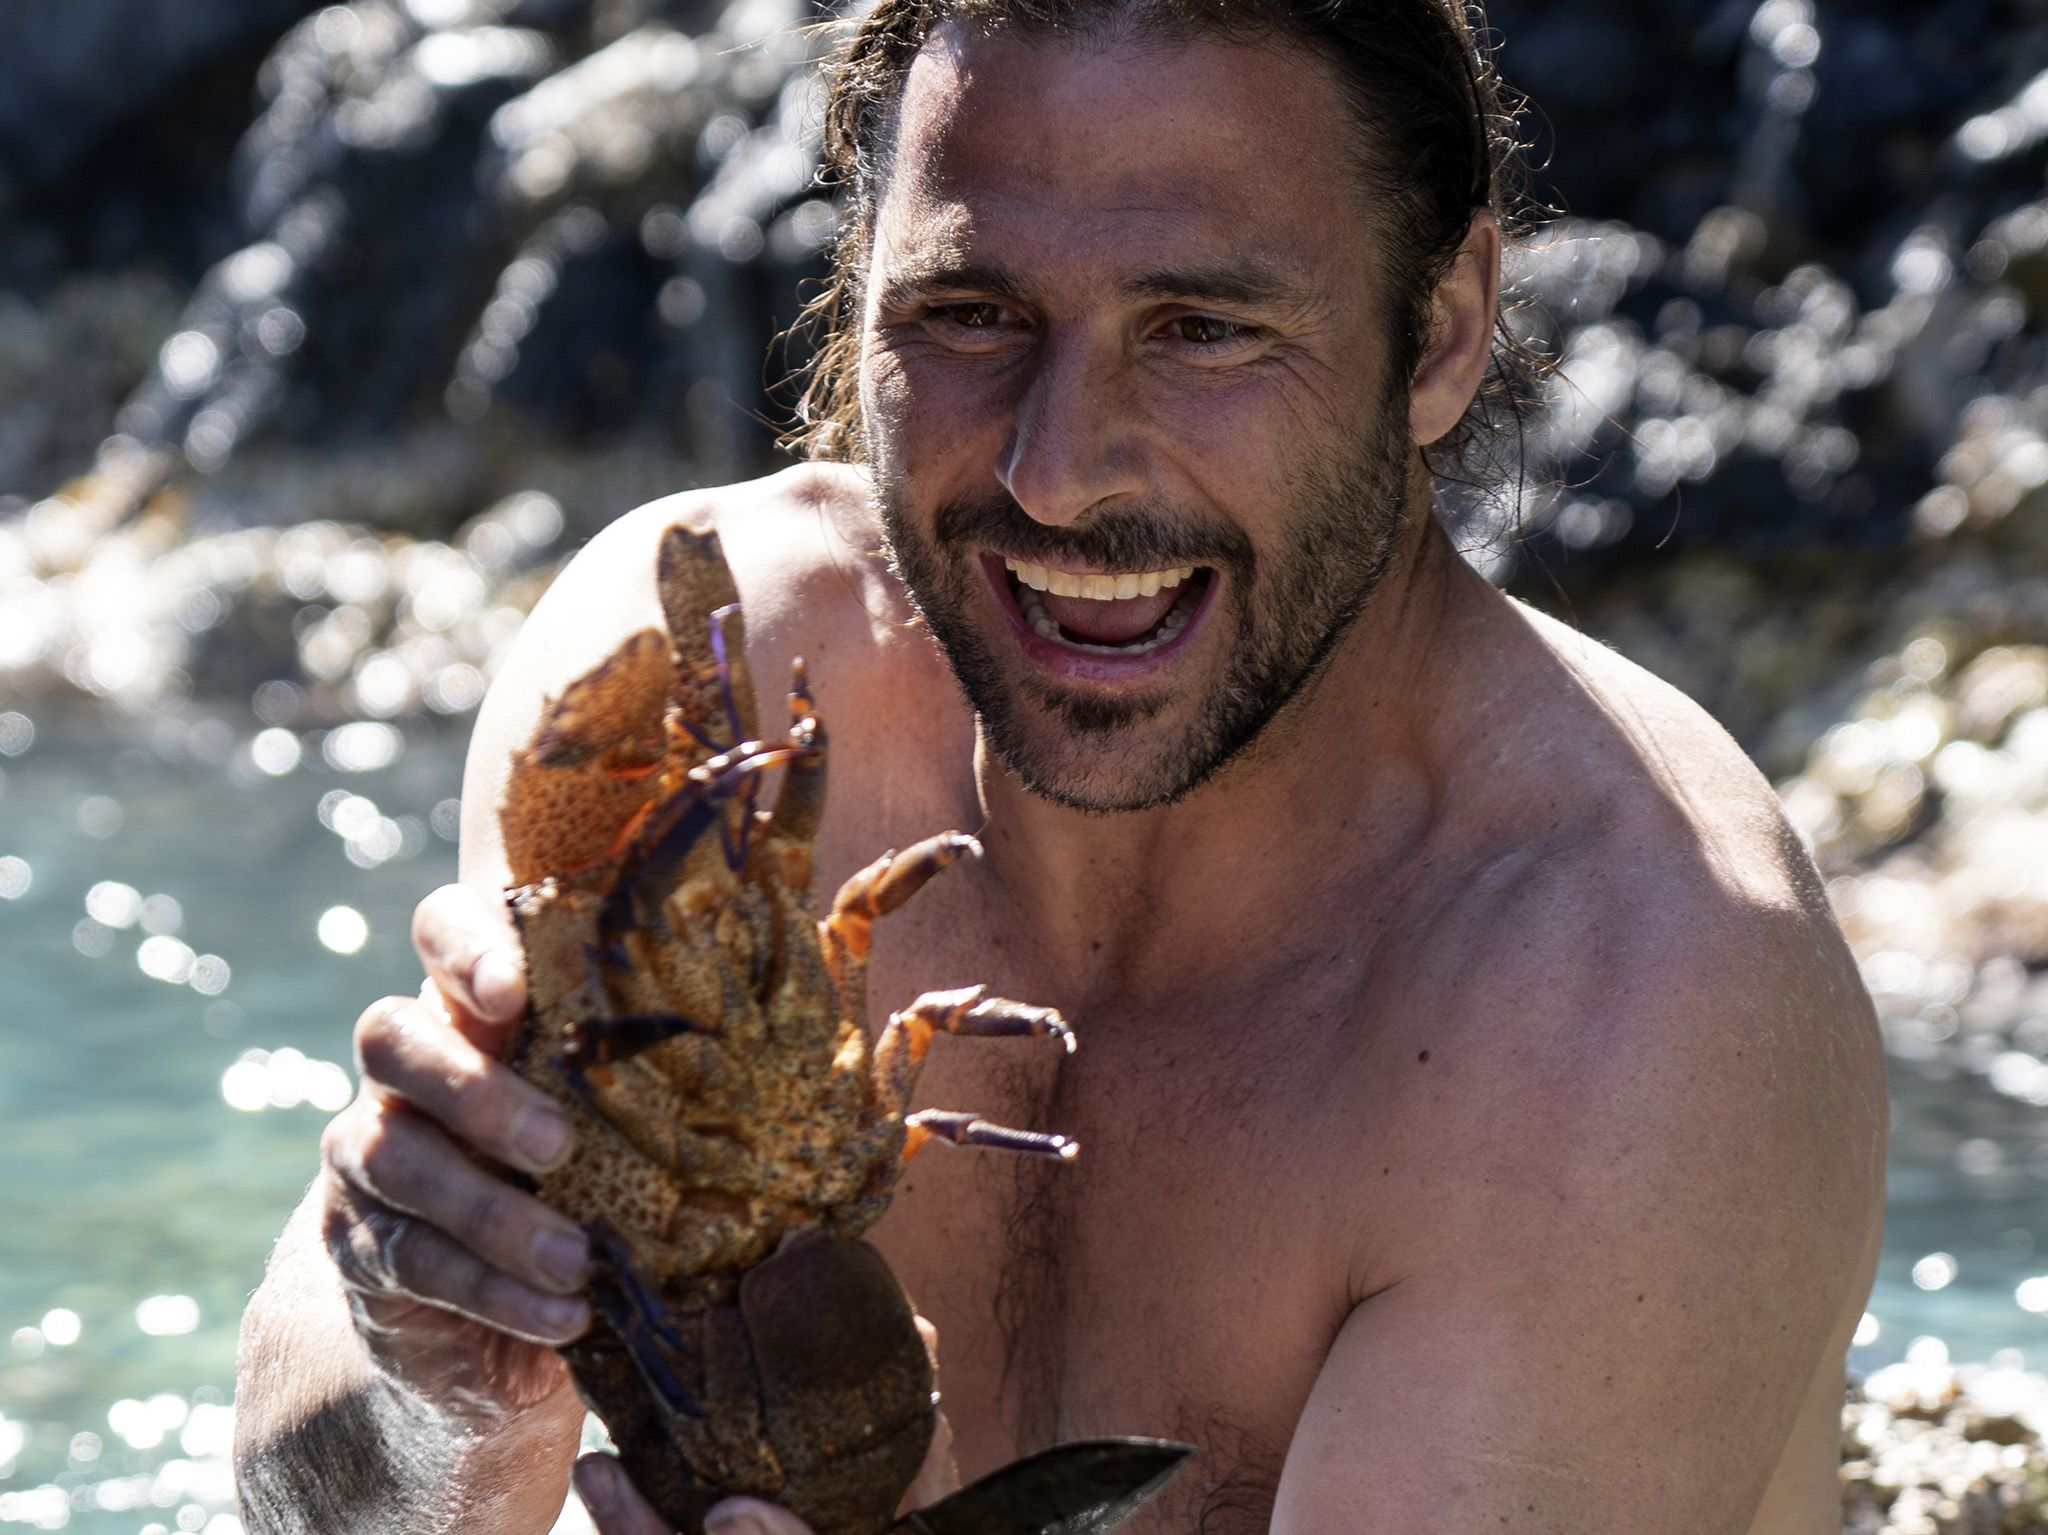 Hazen Audel holds a lobster he caught by hand in the sea. This image is from Ultimate Survival WWII. [Photo of the day - نوامبر 2019]